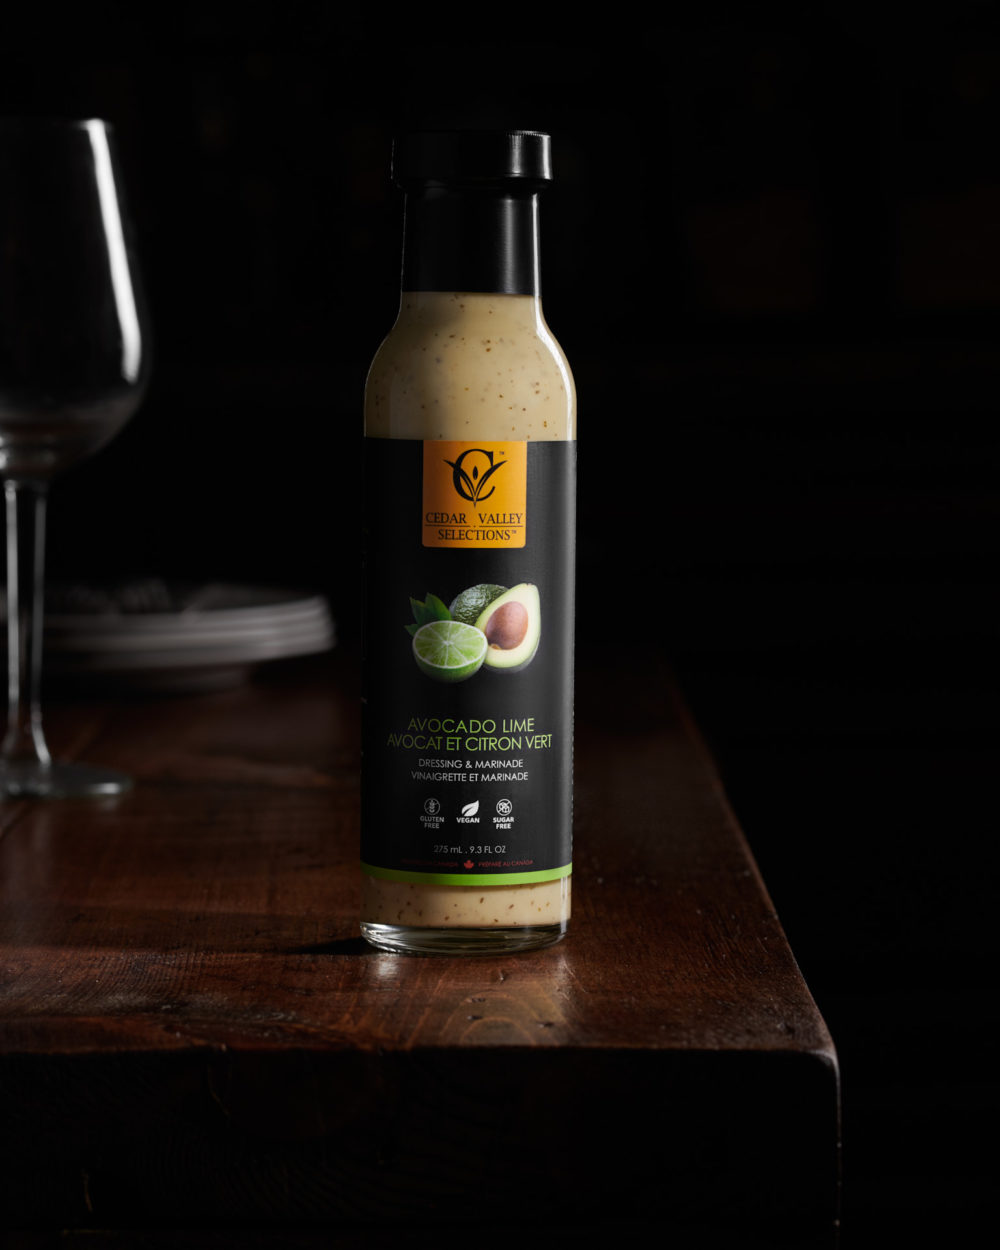 Environmental Product Photography of Cedar Valley Selections Avocado Lime Salad Dressing and Marinade by Brandon Marsh Photography and Food Stylist Laurie Cadman Creative